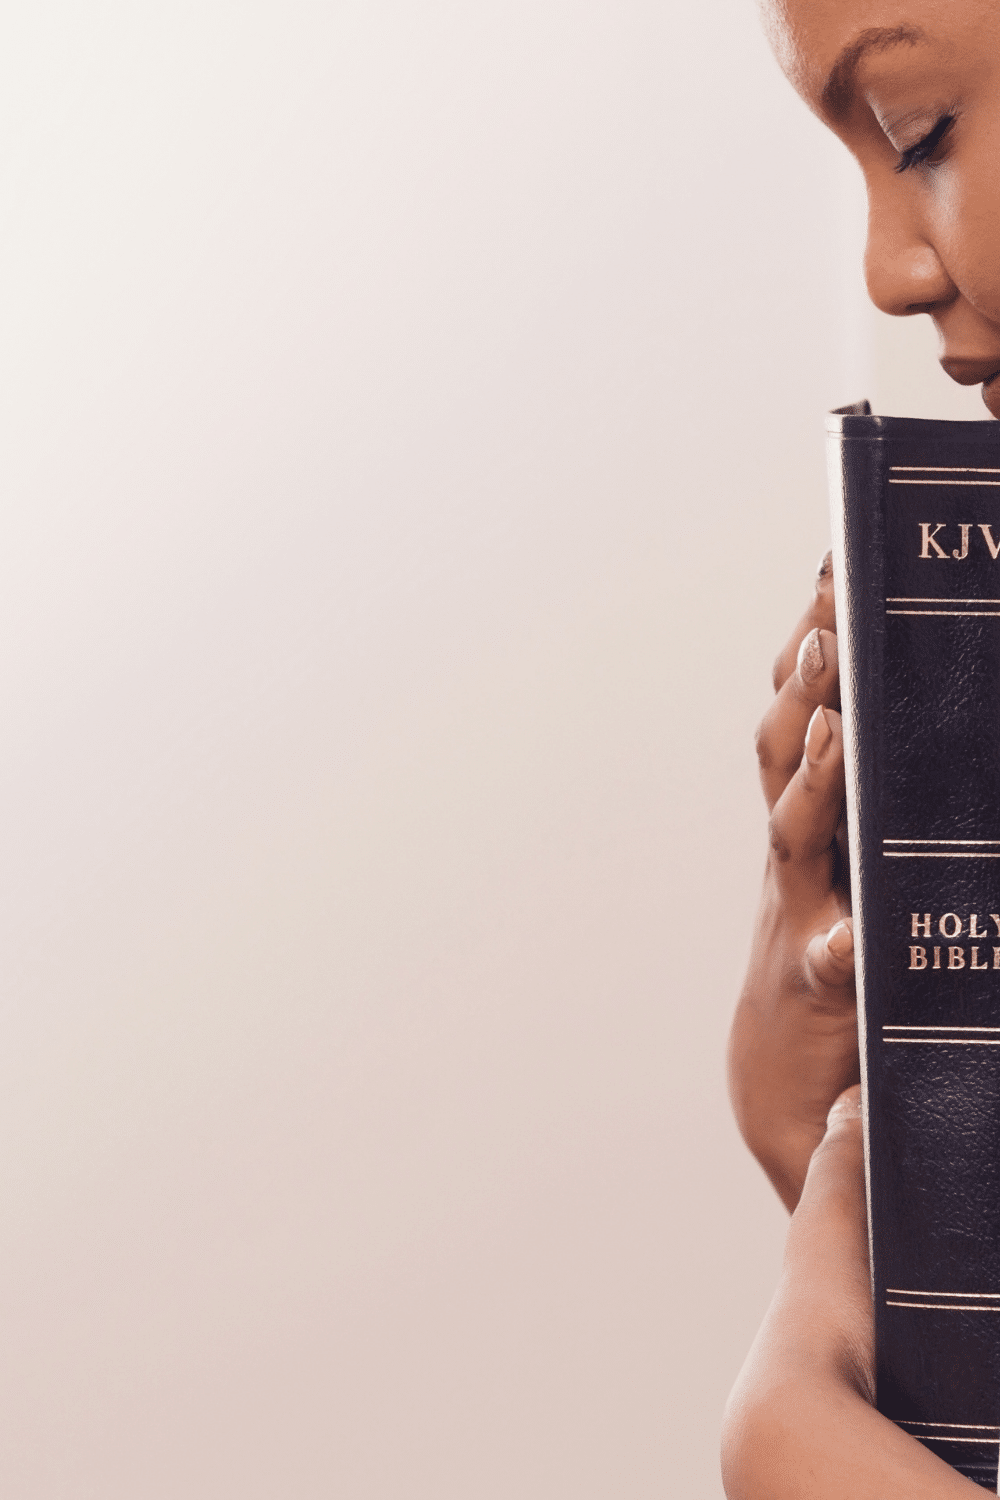 Different bible study methods to grow closer to God